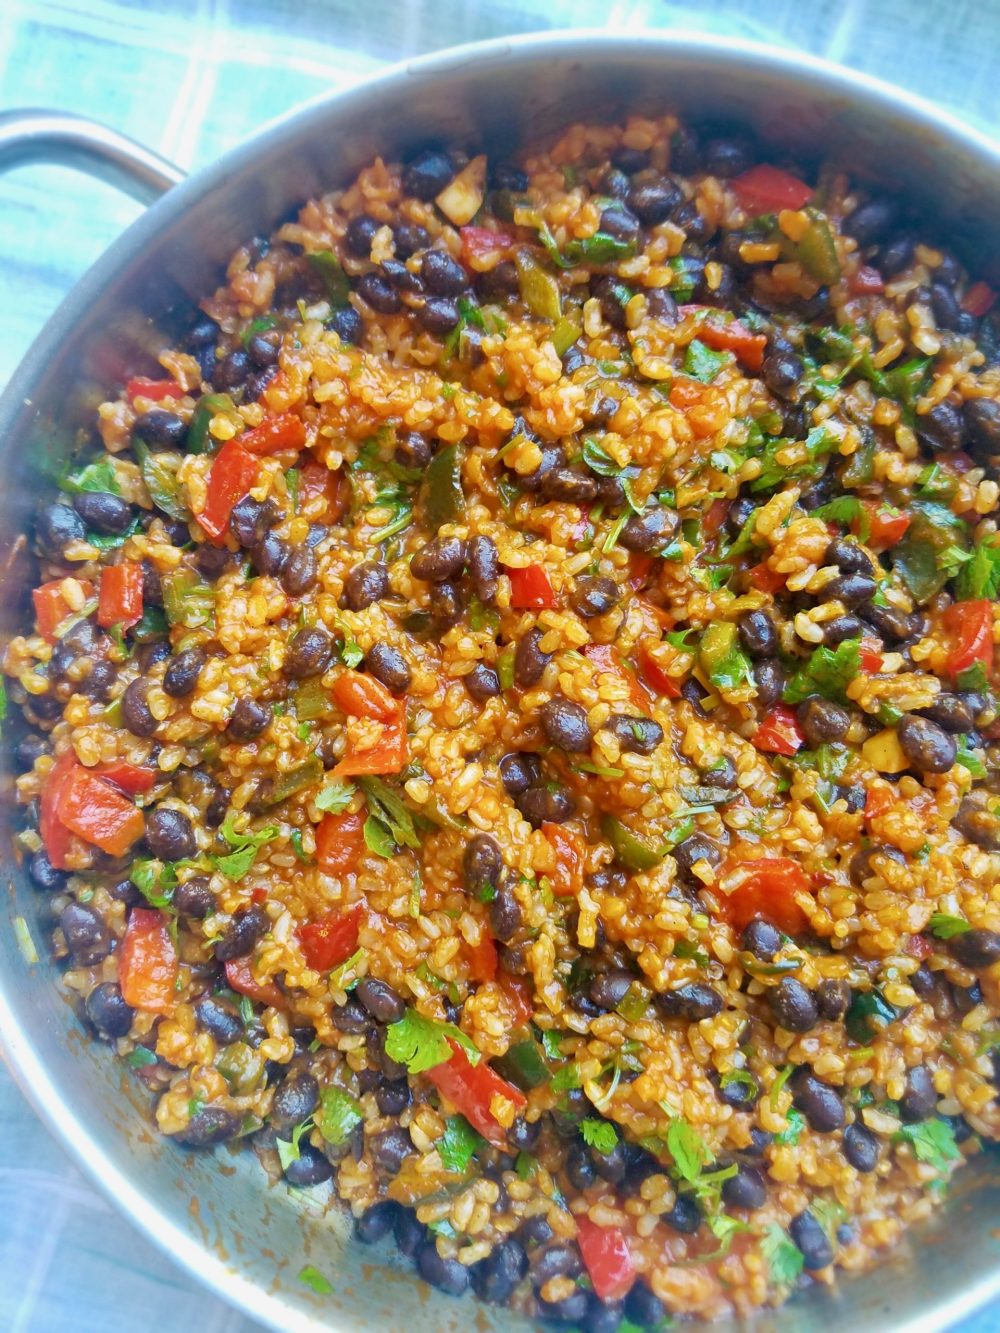 Black Beans and Rice as a Meal